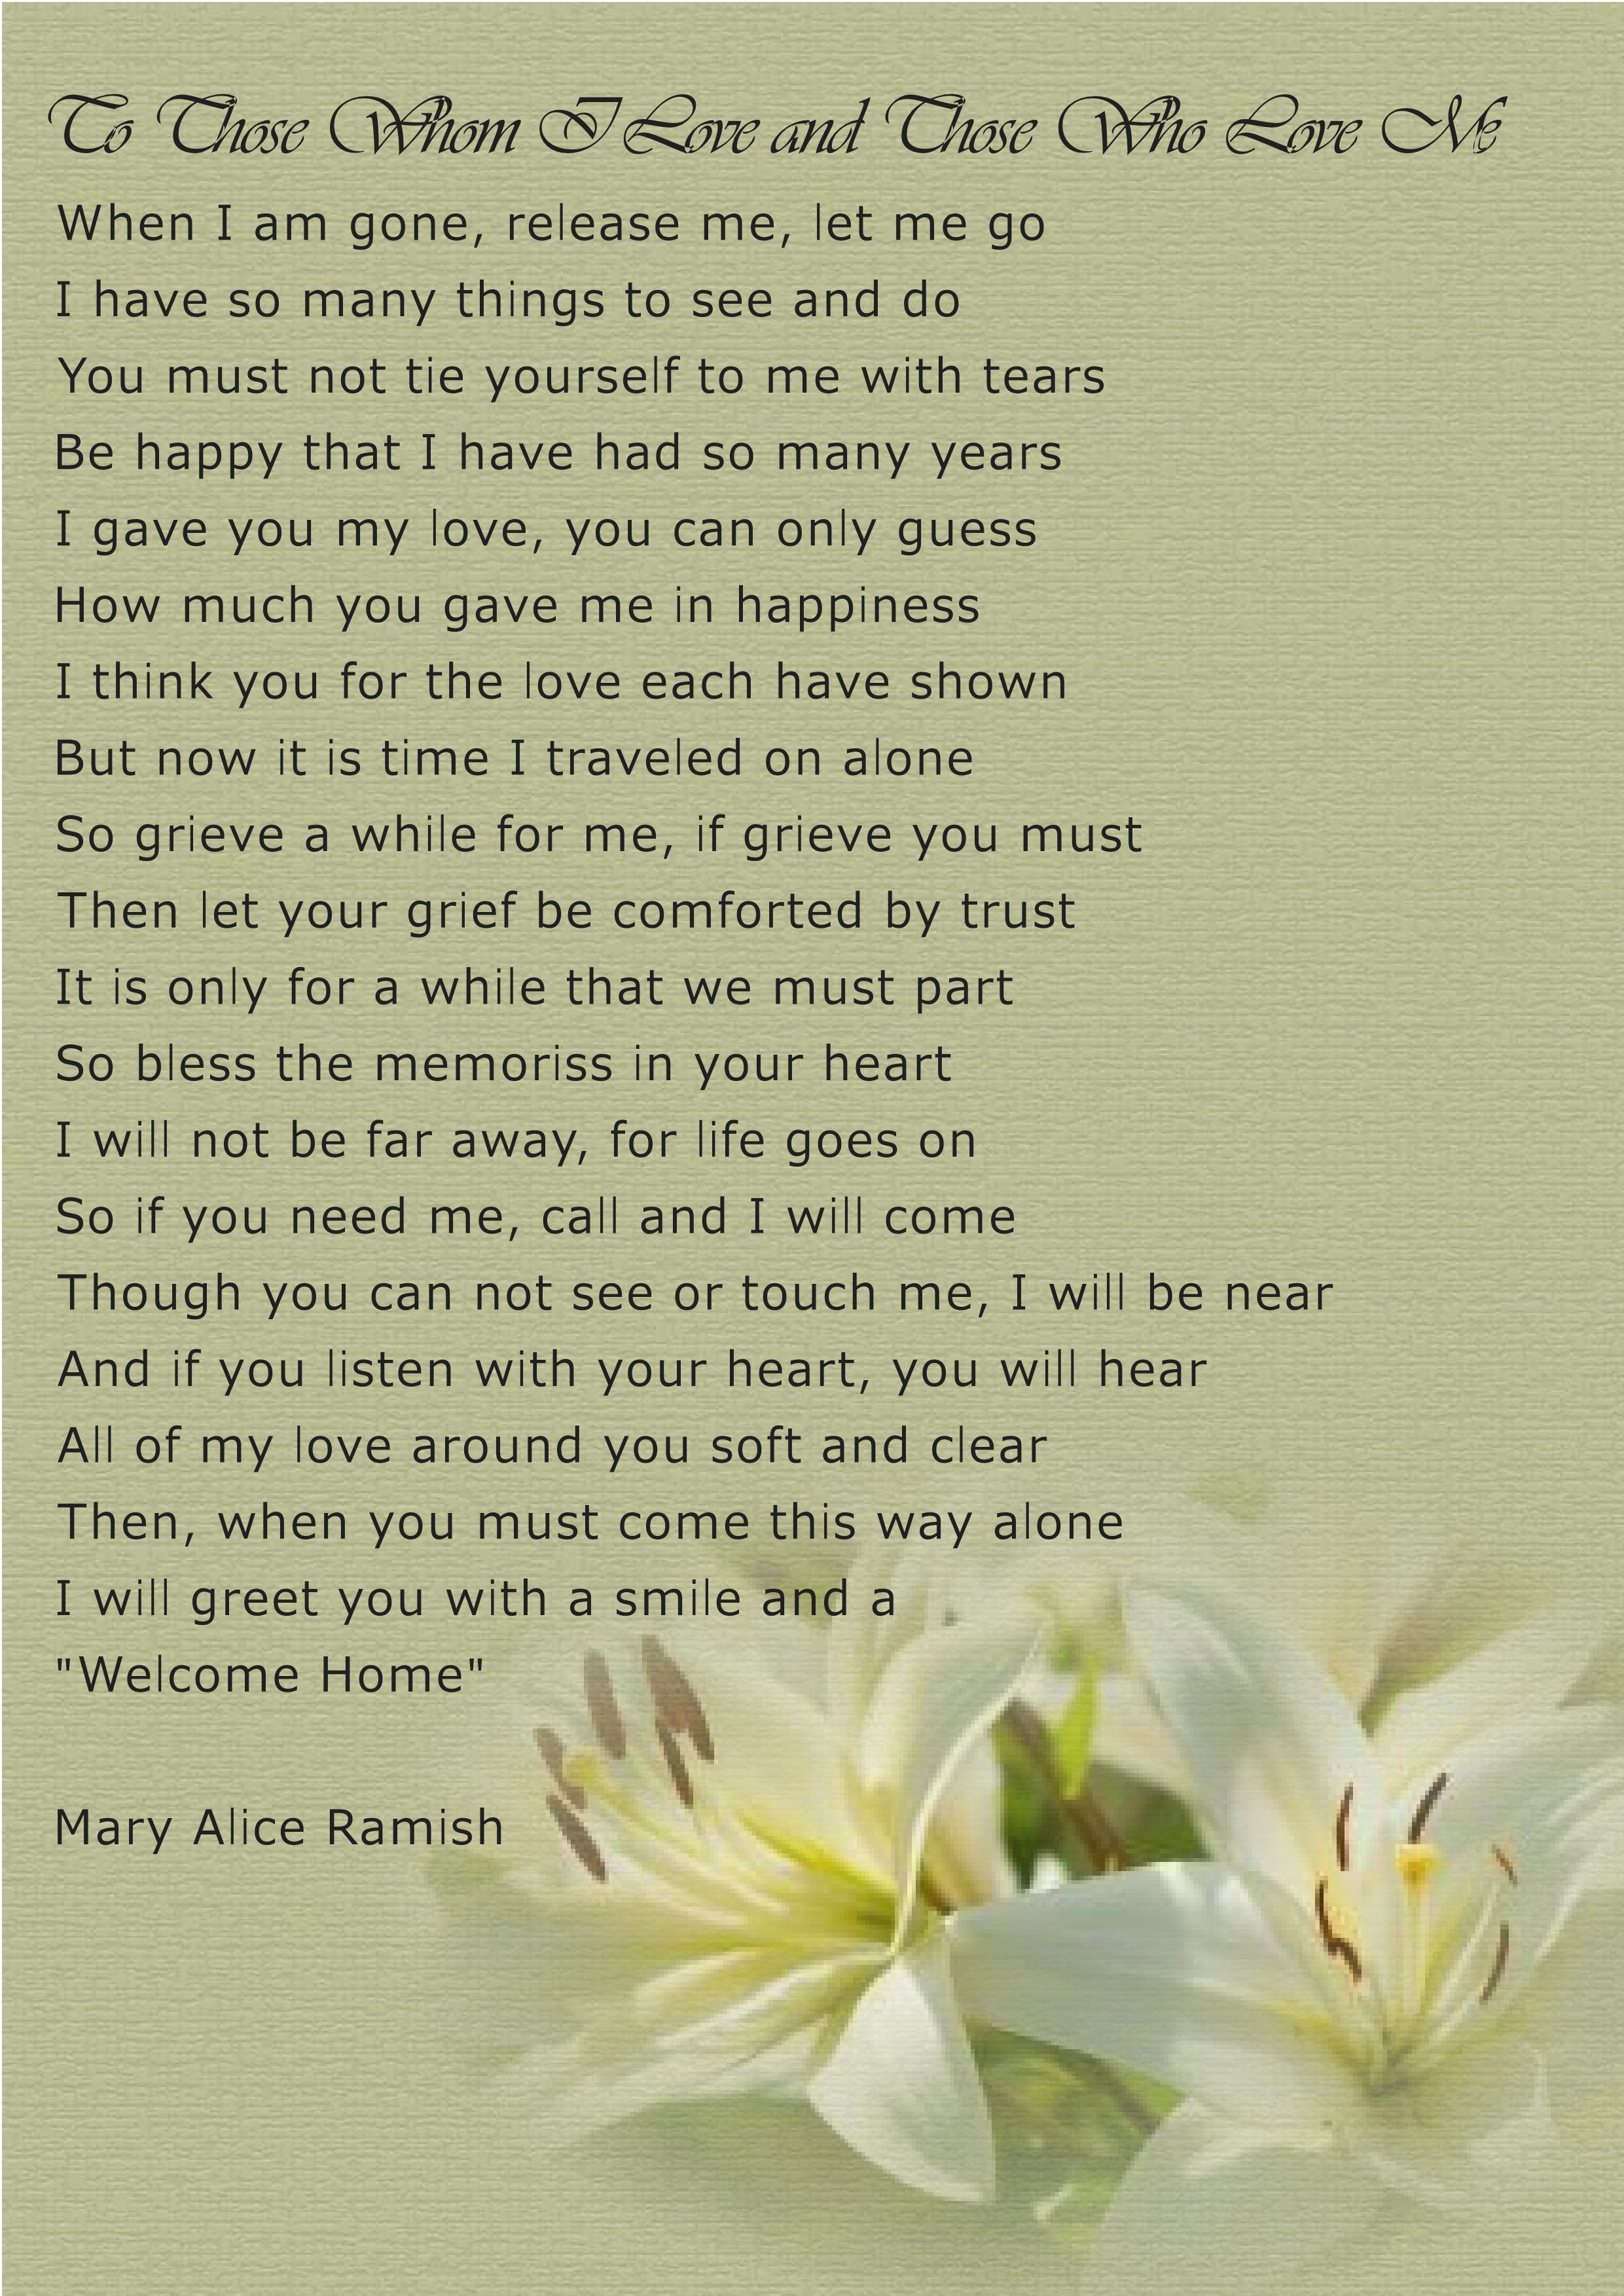 Poem To Those Whom I Love Card Created By Martins Funerals